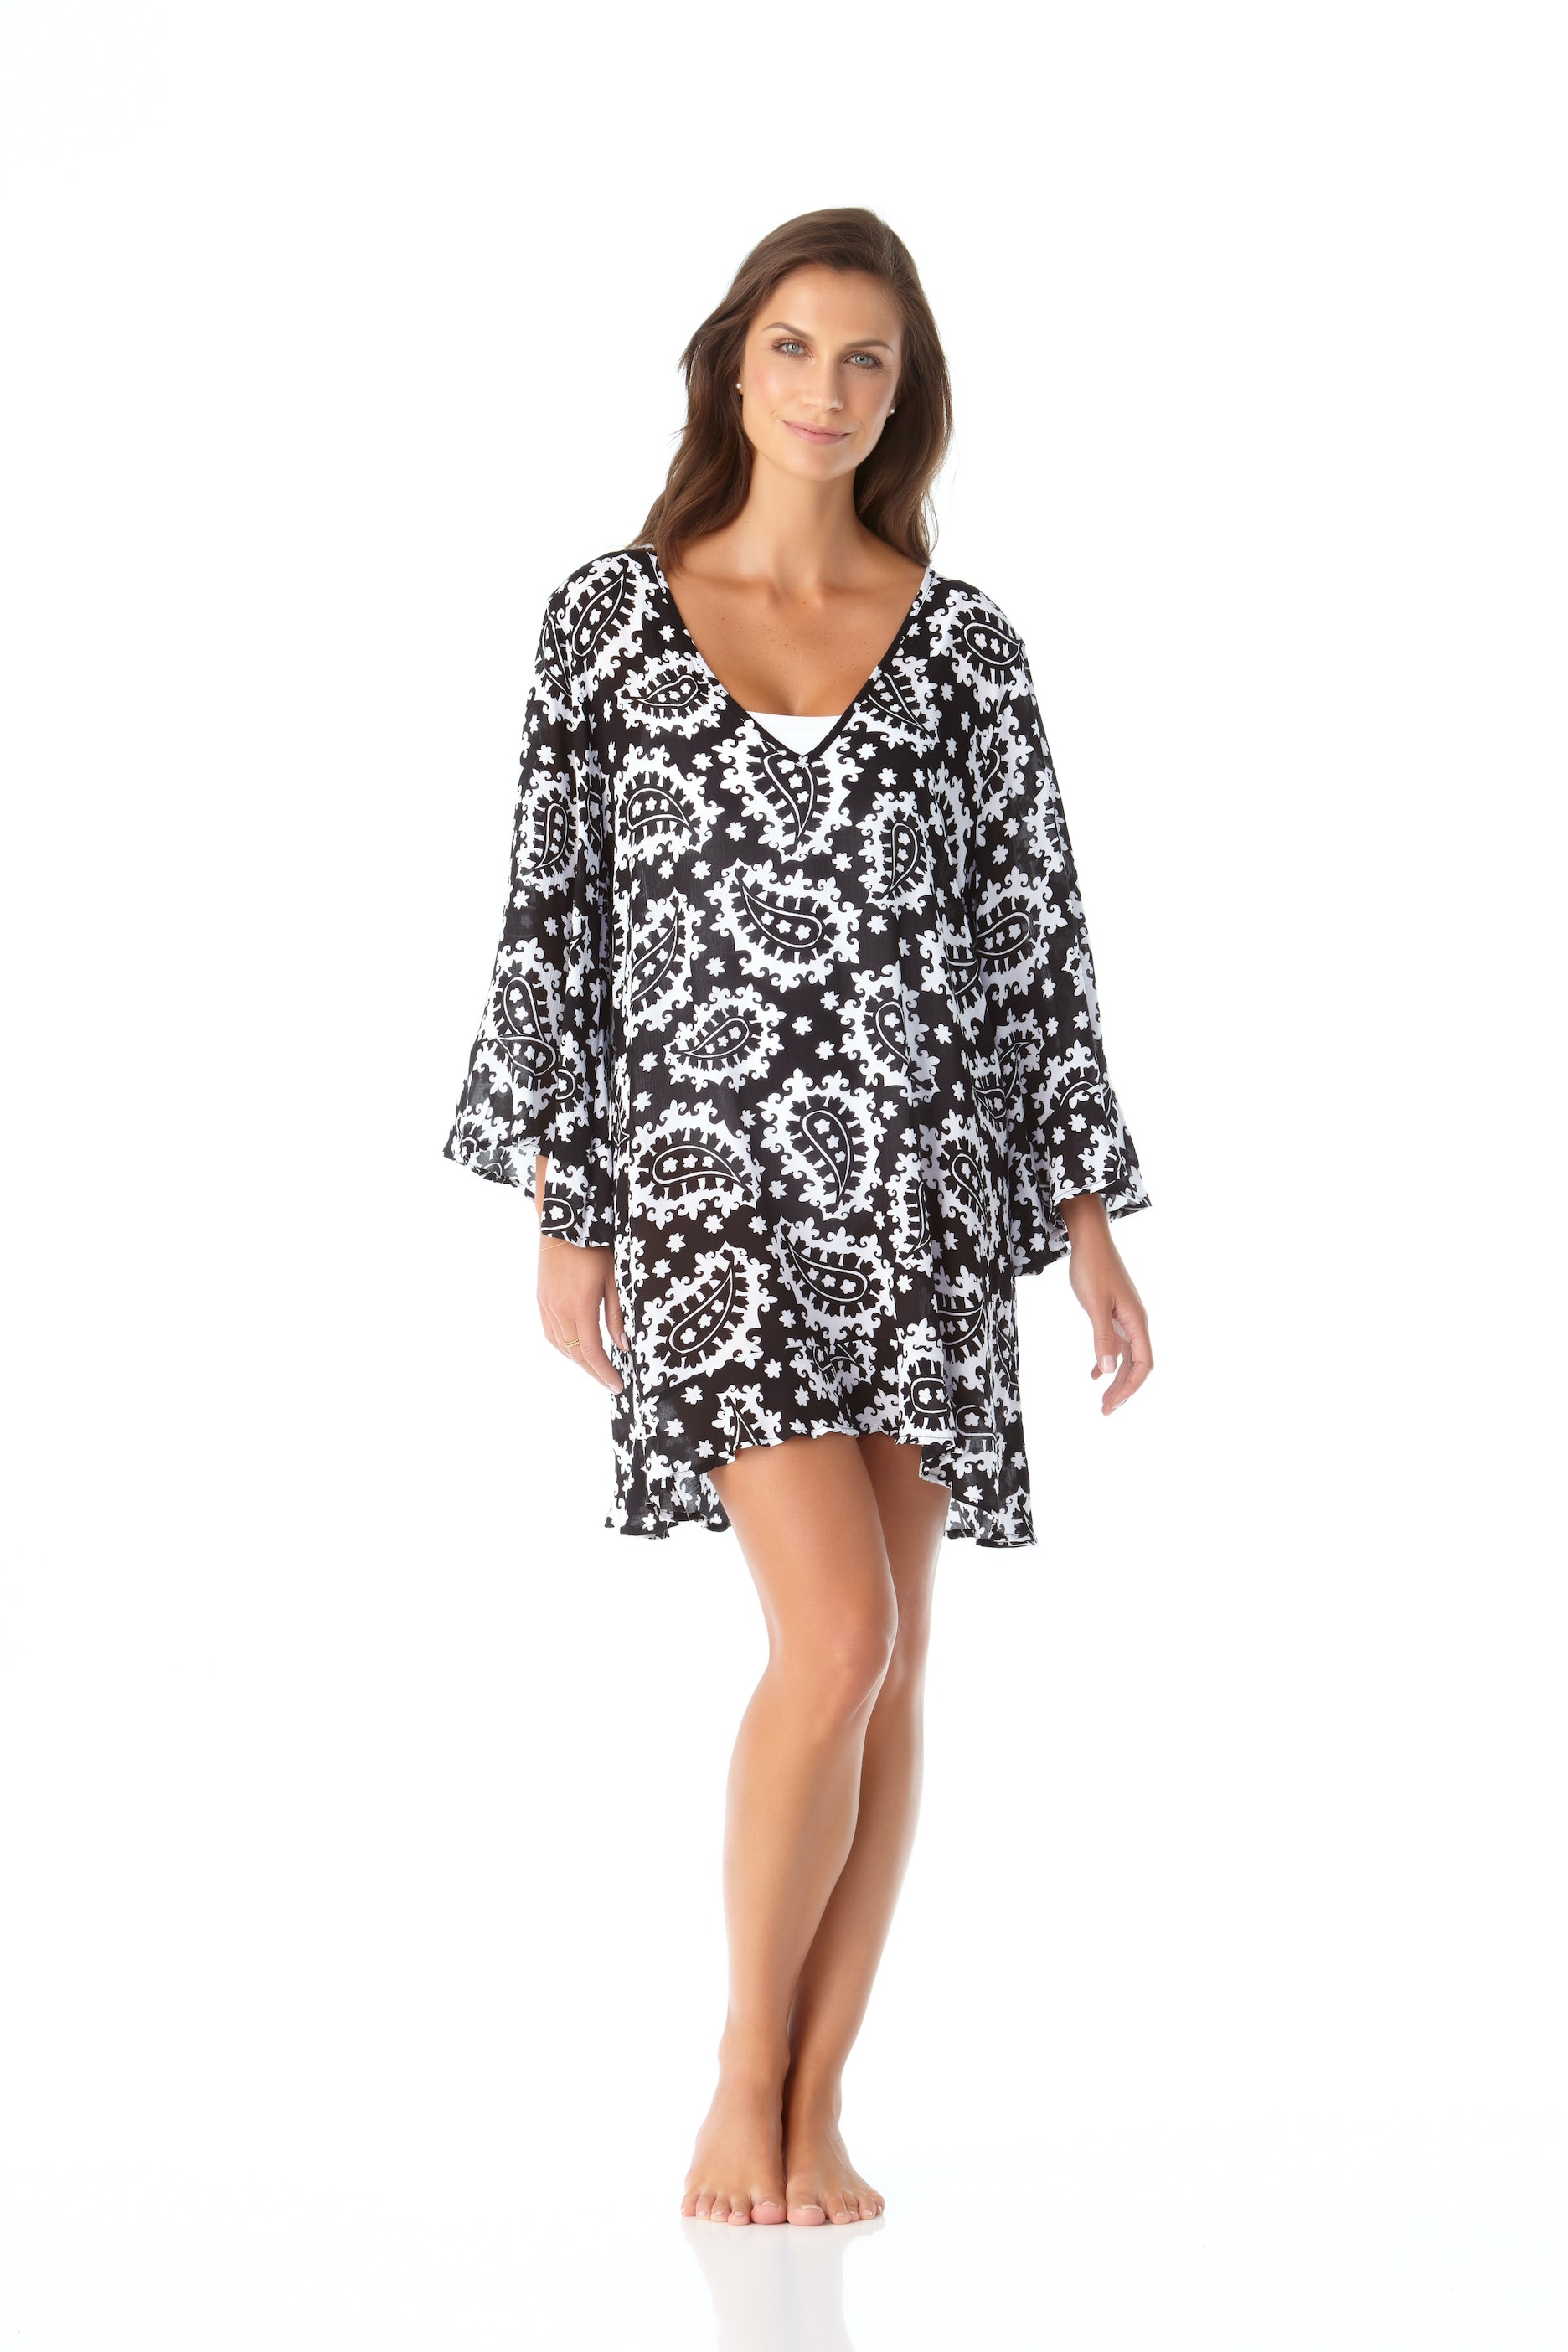 Anne Cole® Riveria Paisley Flounce Sleeve Tunic Swimsuit Cover-Up - Black/White - Front